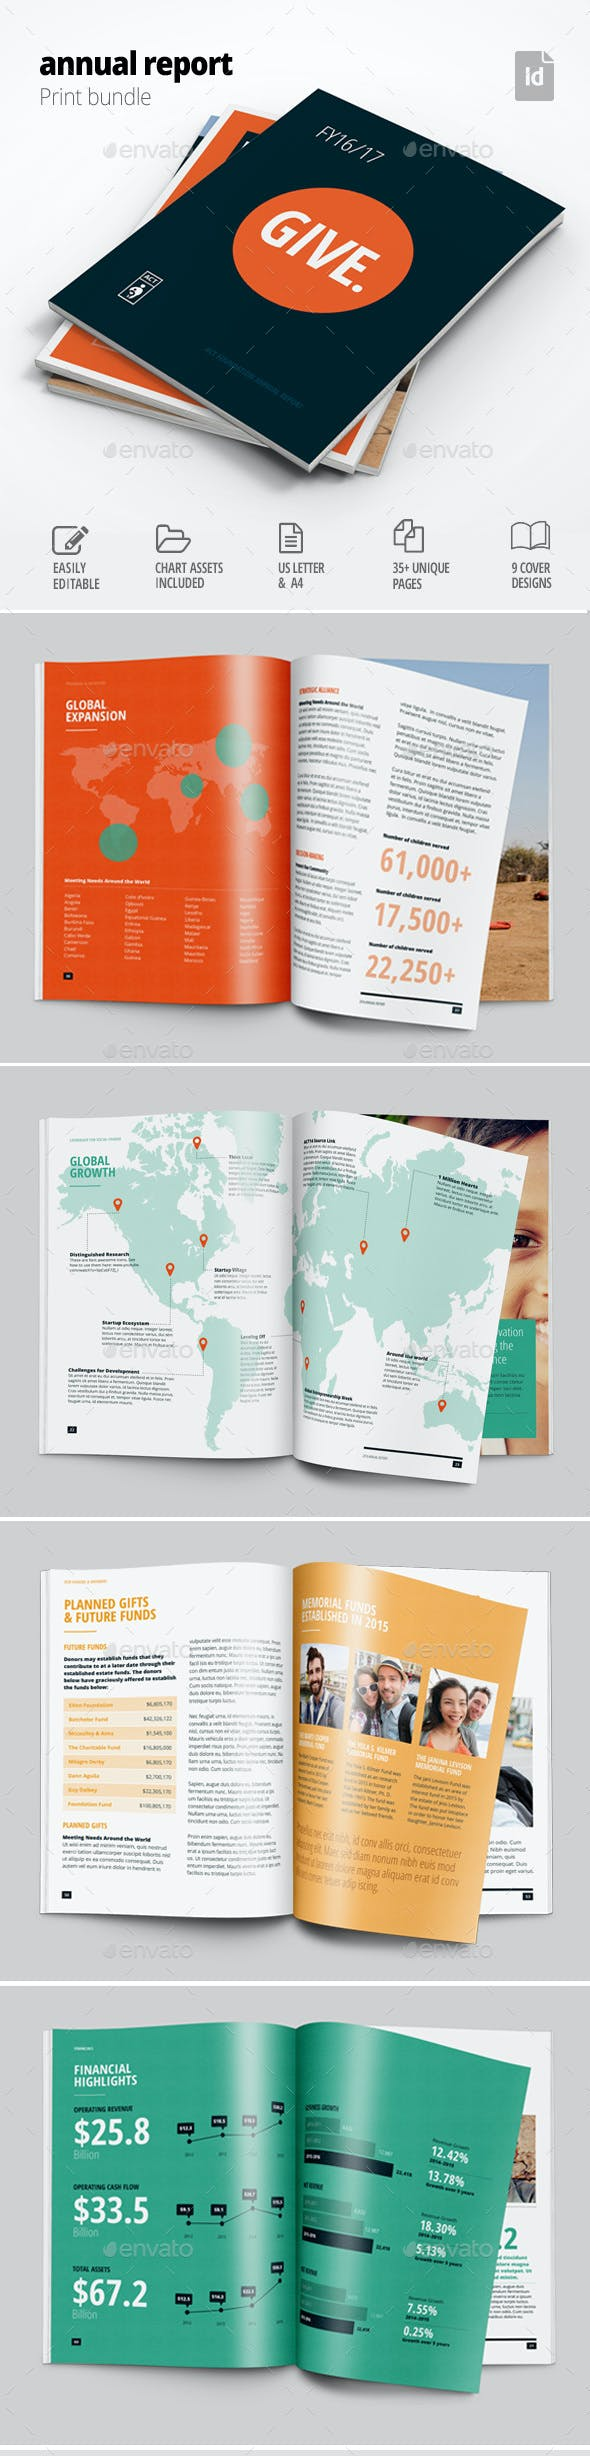 Nonprofit Annual Report Template By Land